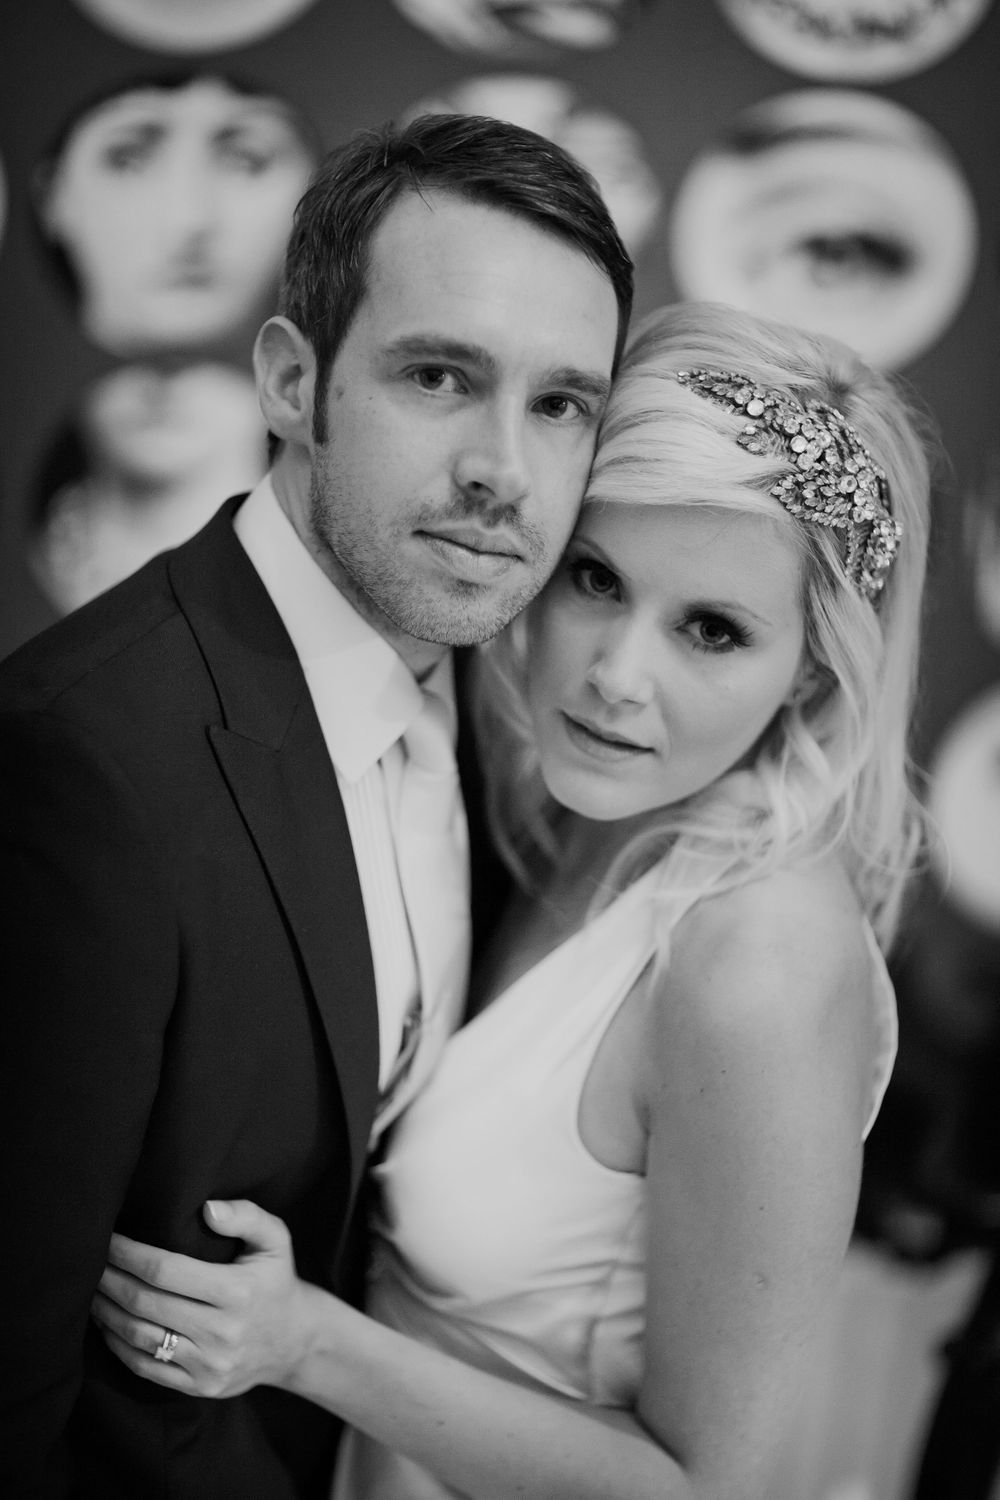 My wedding, black & white wedding image, Jenny Packham bride, Jenny Packham headpiece